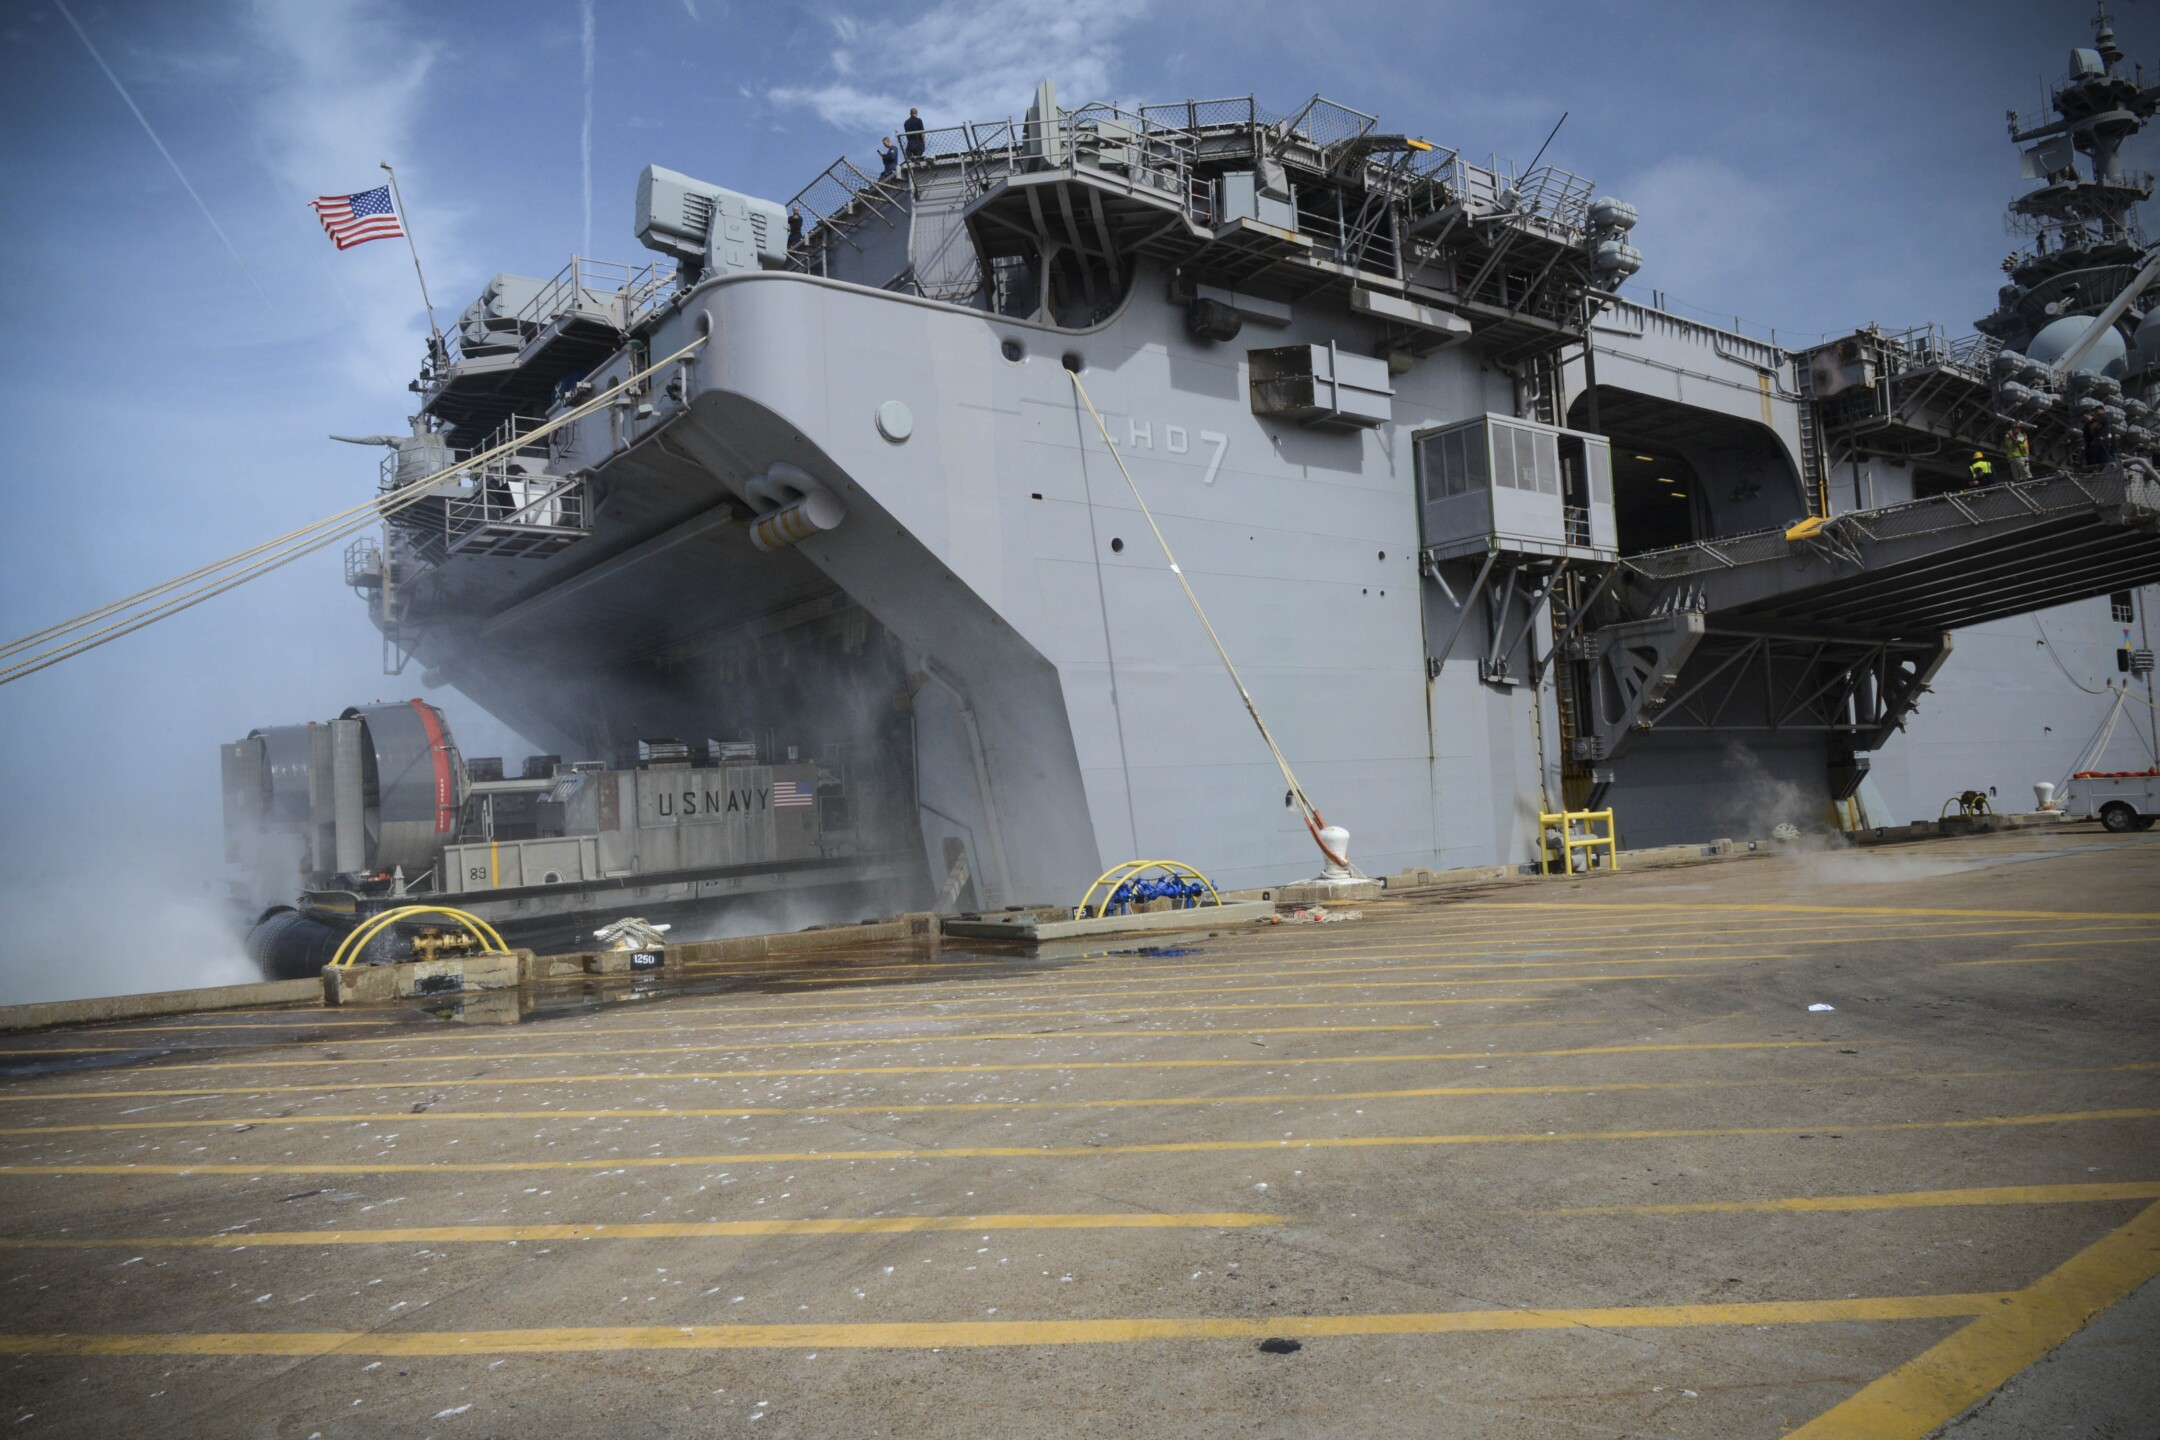 Photos: USS Iwo Jima, 24th Marine Expeditionary Unit deploy to Haiti after Hurricane Matthew